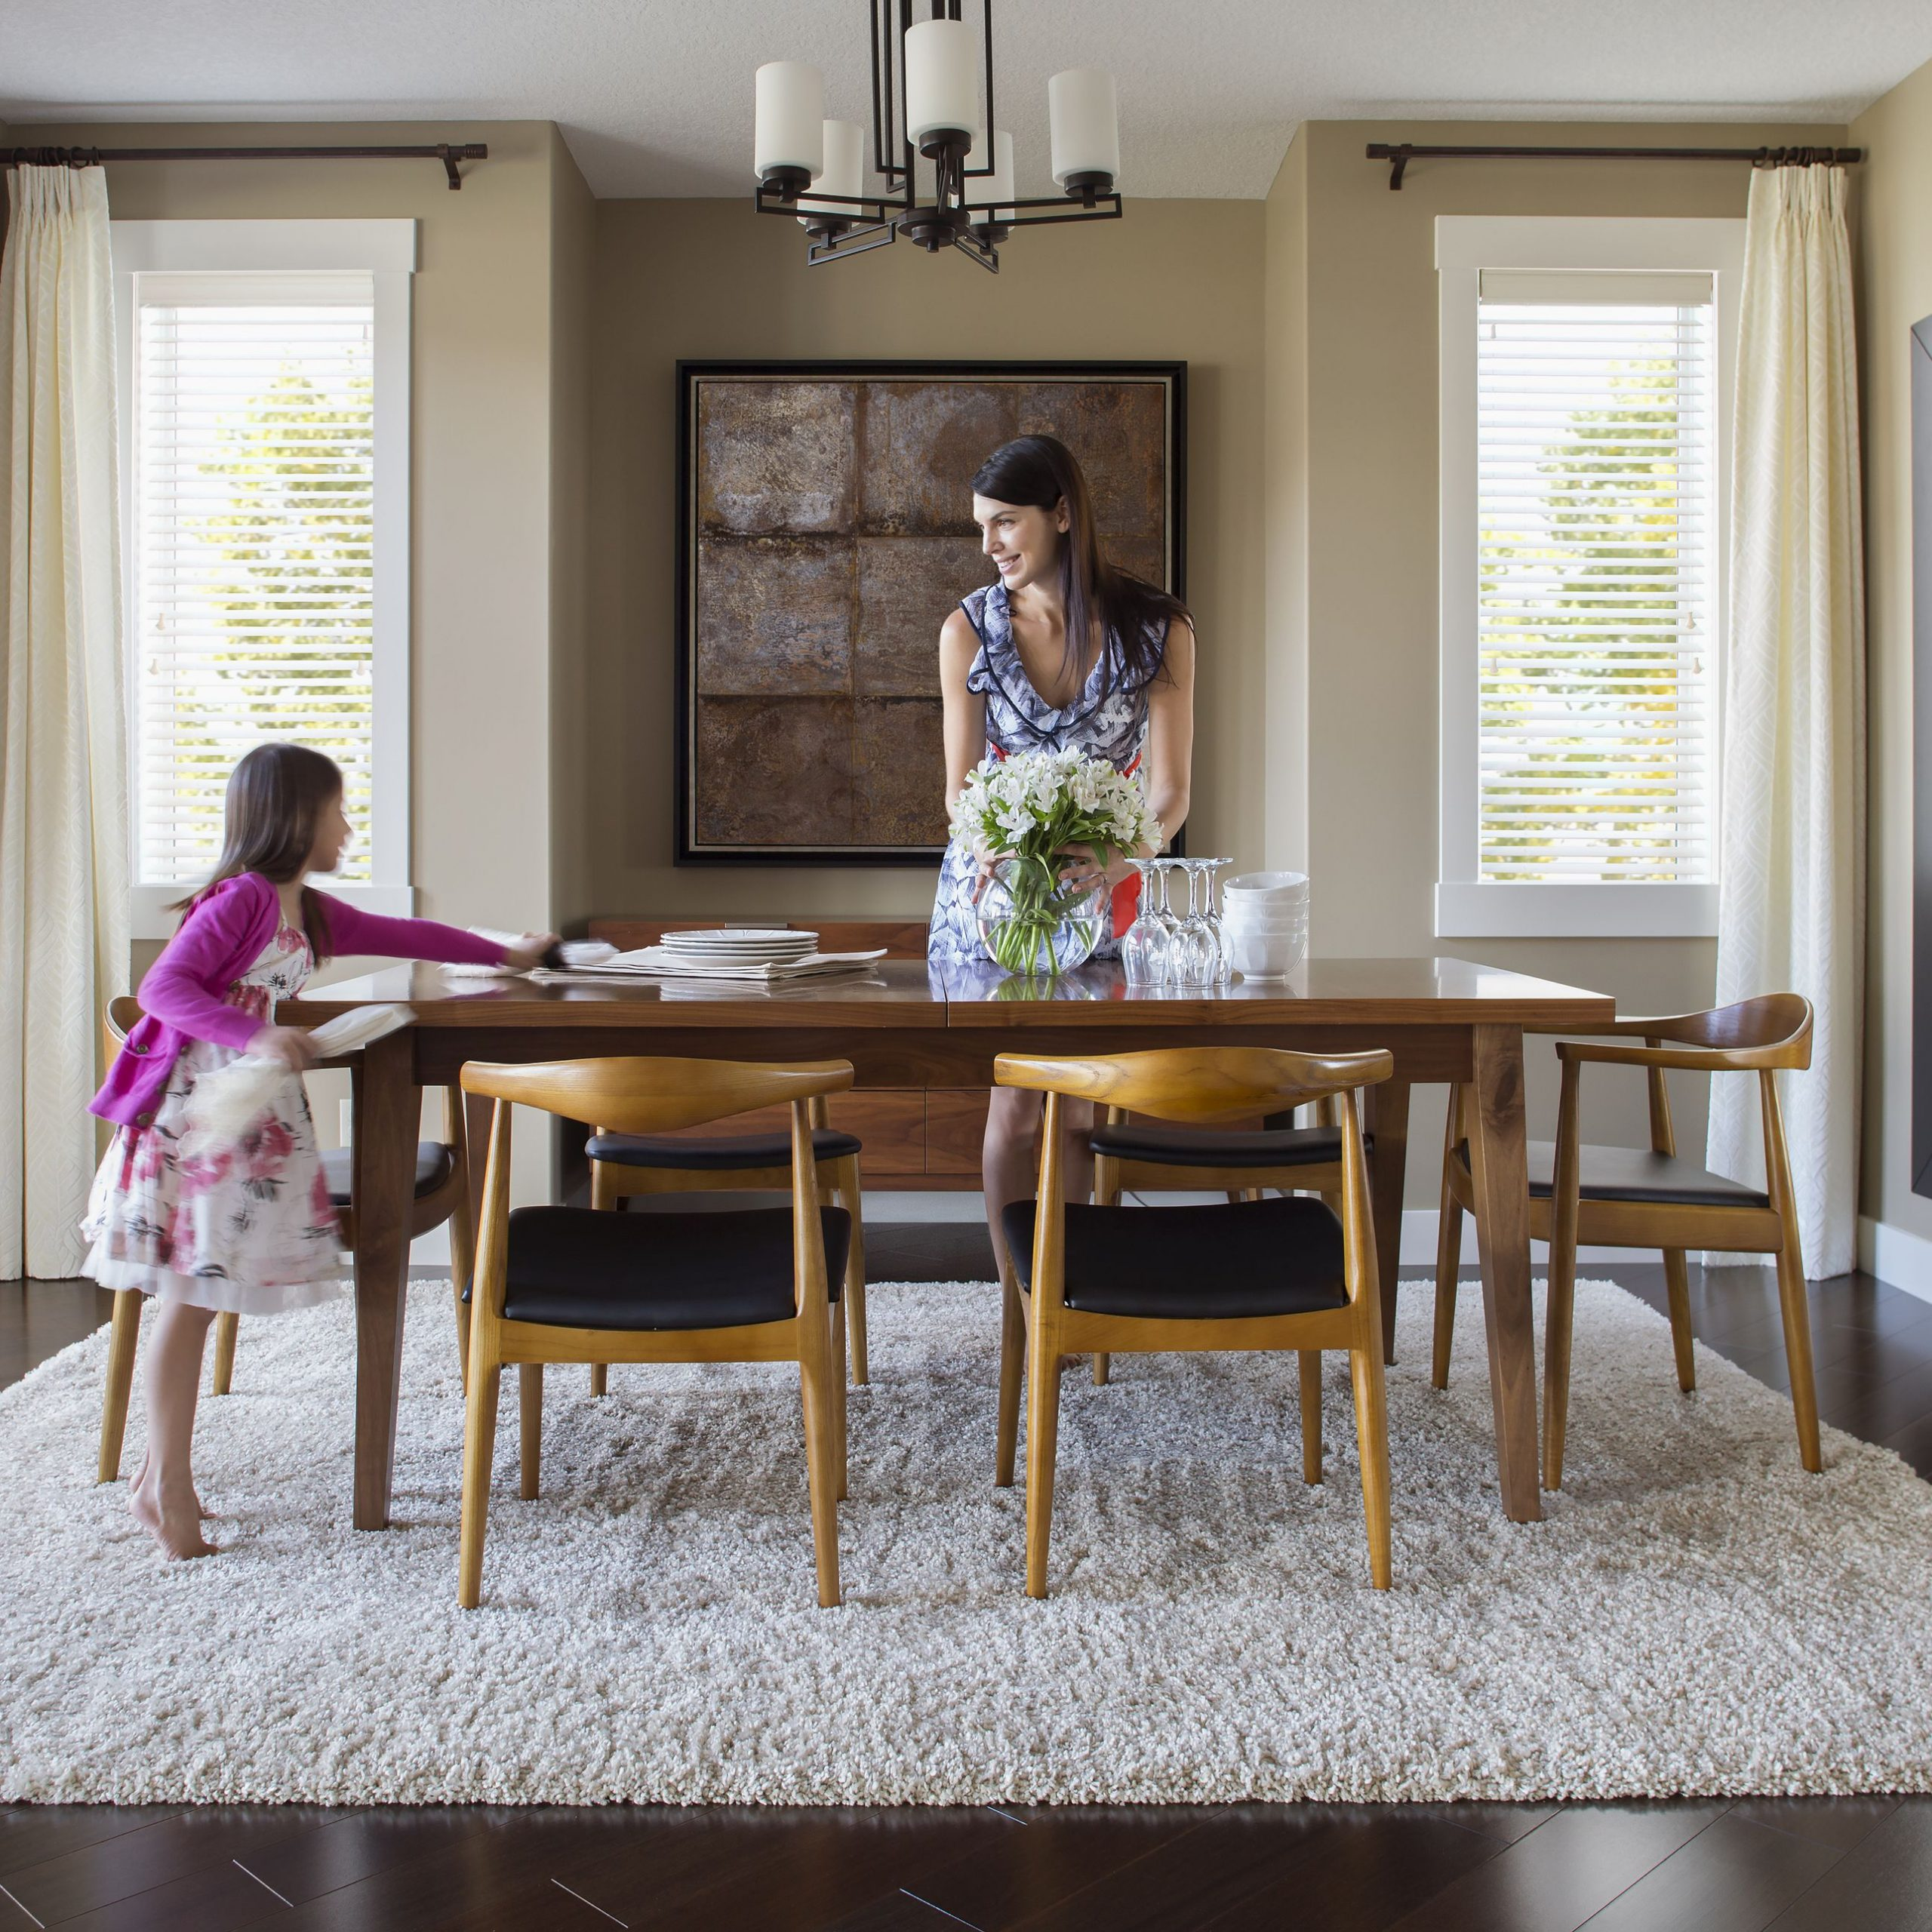 How To Choose Chairs For Your Dining Table With Preferred Country Dining Tables With Weathered Pine Finish (View 28 of 30)